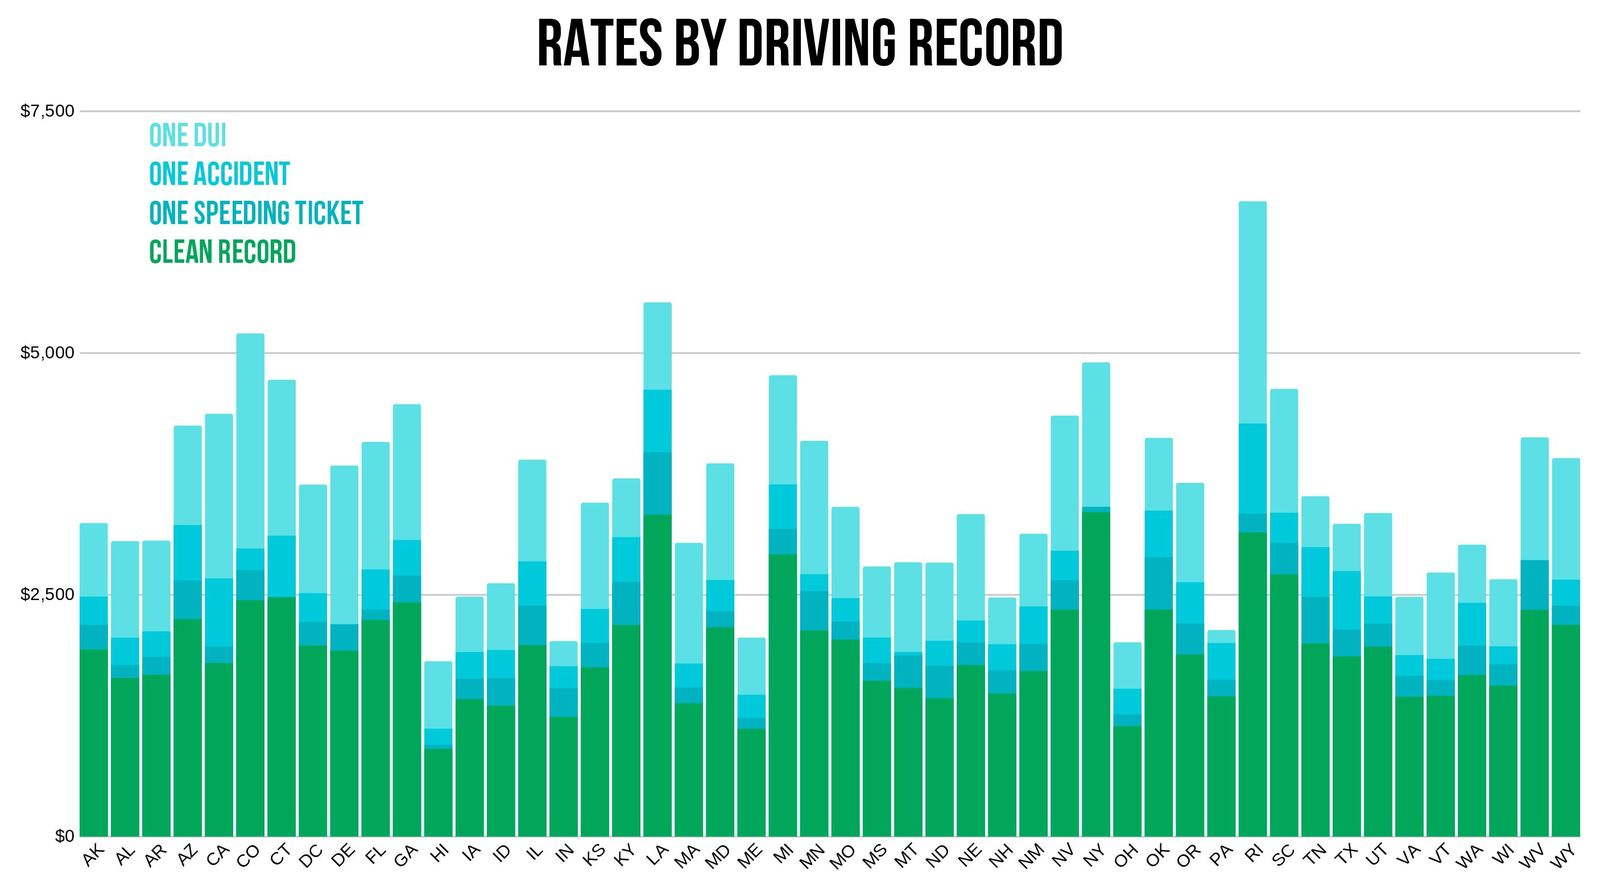 USAA rates depending on driving record